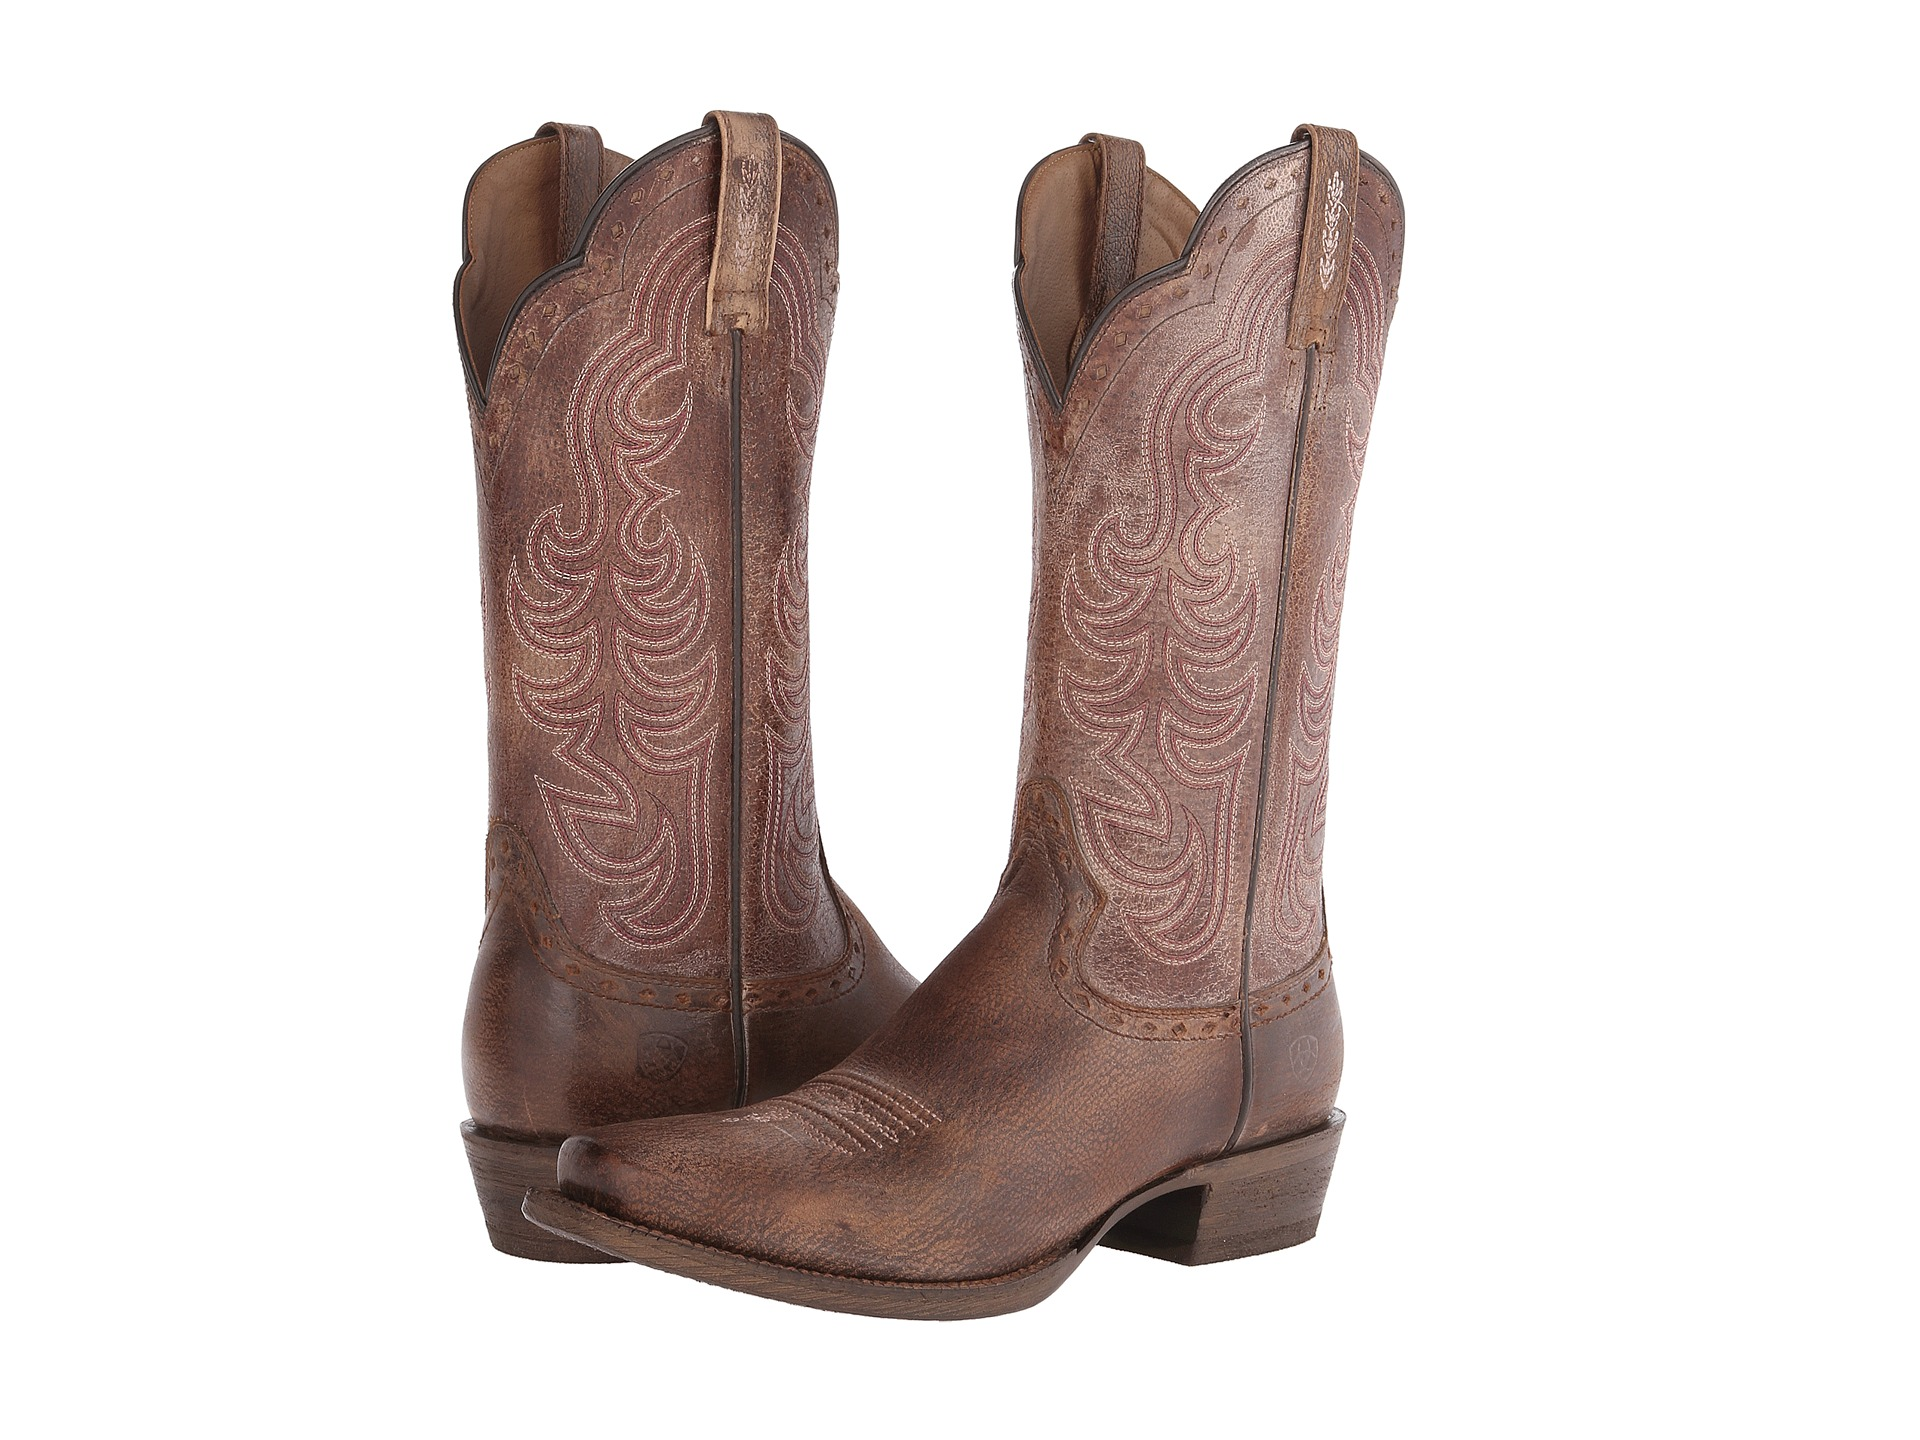 Are Ariat Boots Good Boots And Heels 2017